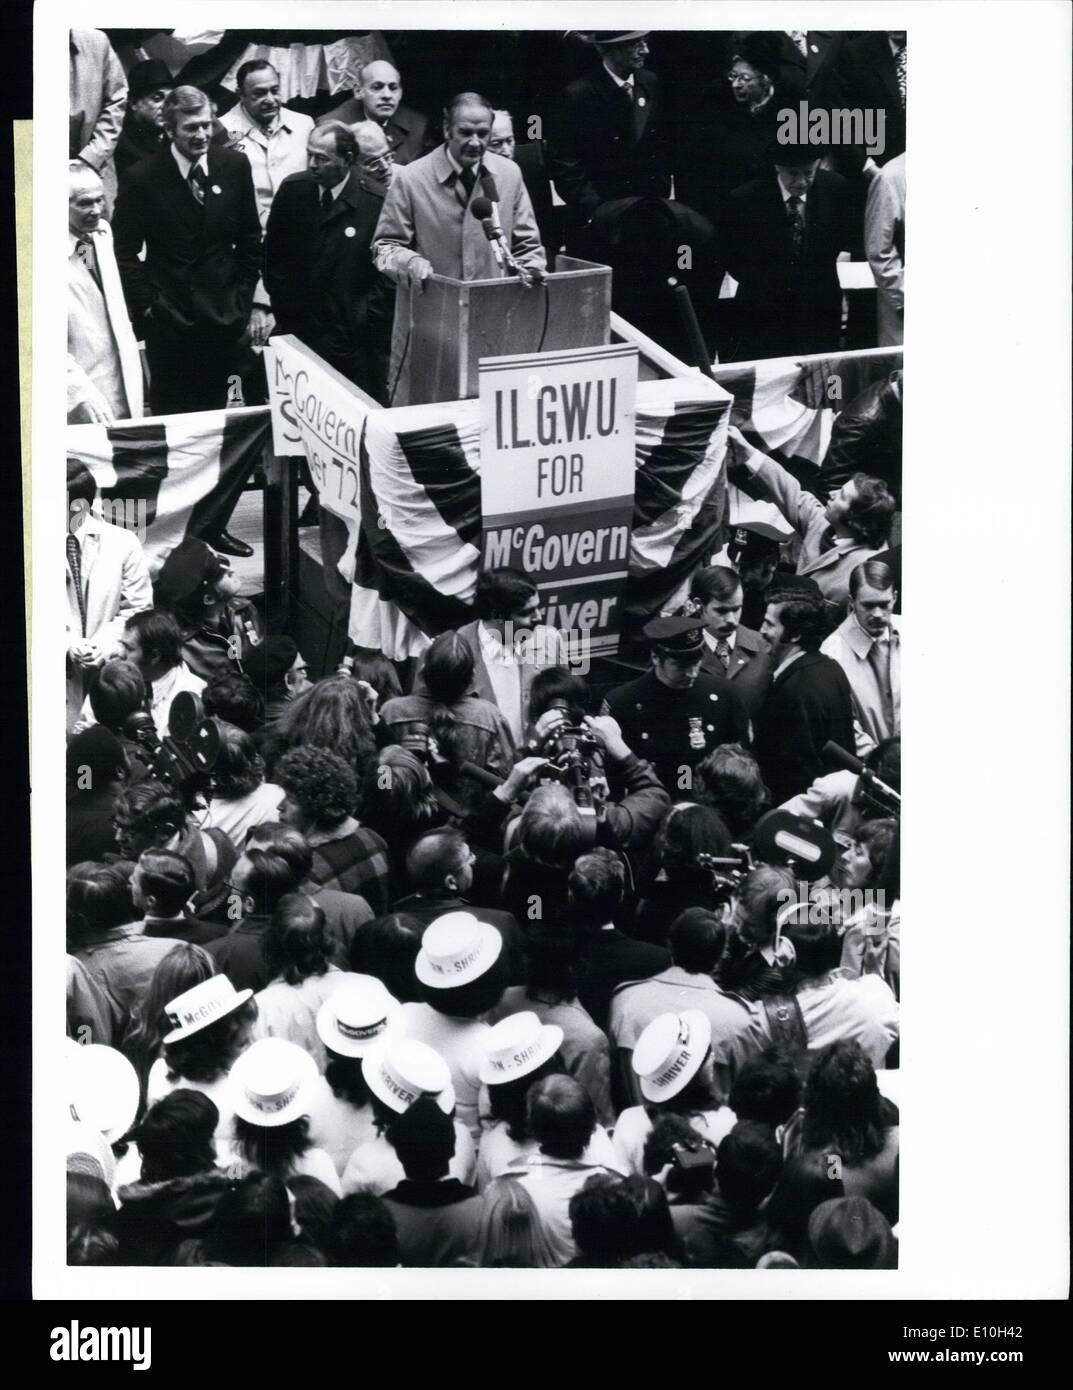 Nov. 11, 1972 - Democratic Candidate for President Senator George McGovern makes the traditional late - campaign visit to New York's garment district. He spoke to a crowd of more than 20,000 people. On the platform were Mayor Lindsay, former Mayor Robert Wagner, International Ladies Garment Workers Union Chief Louis Stulberg, former ILGWU National Democratic Chairman Jean Westwood. Senator Edward Kennedy closed what McGovern called ''the best rally we've had at any place in this campaign' - Stock Image